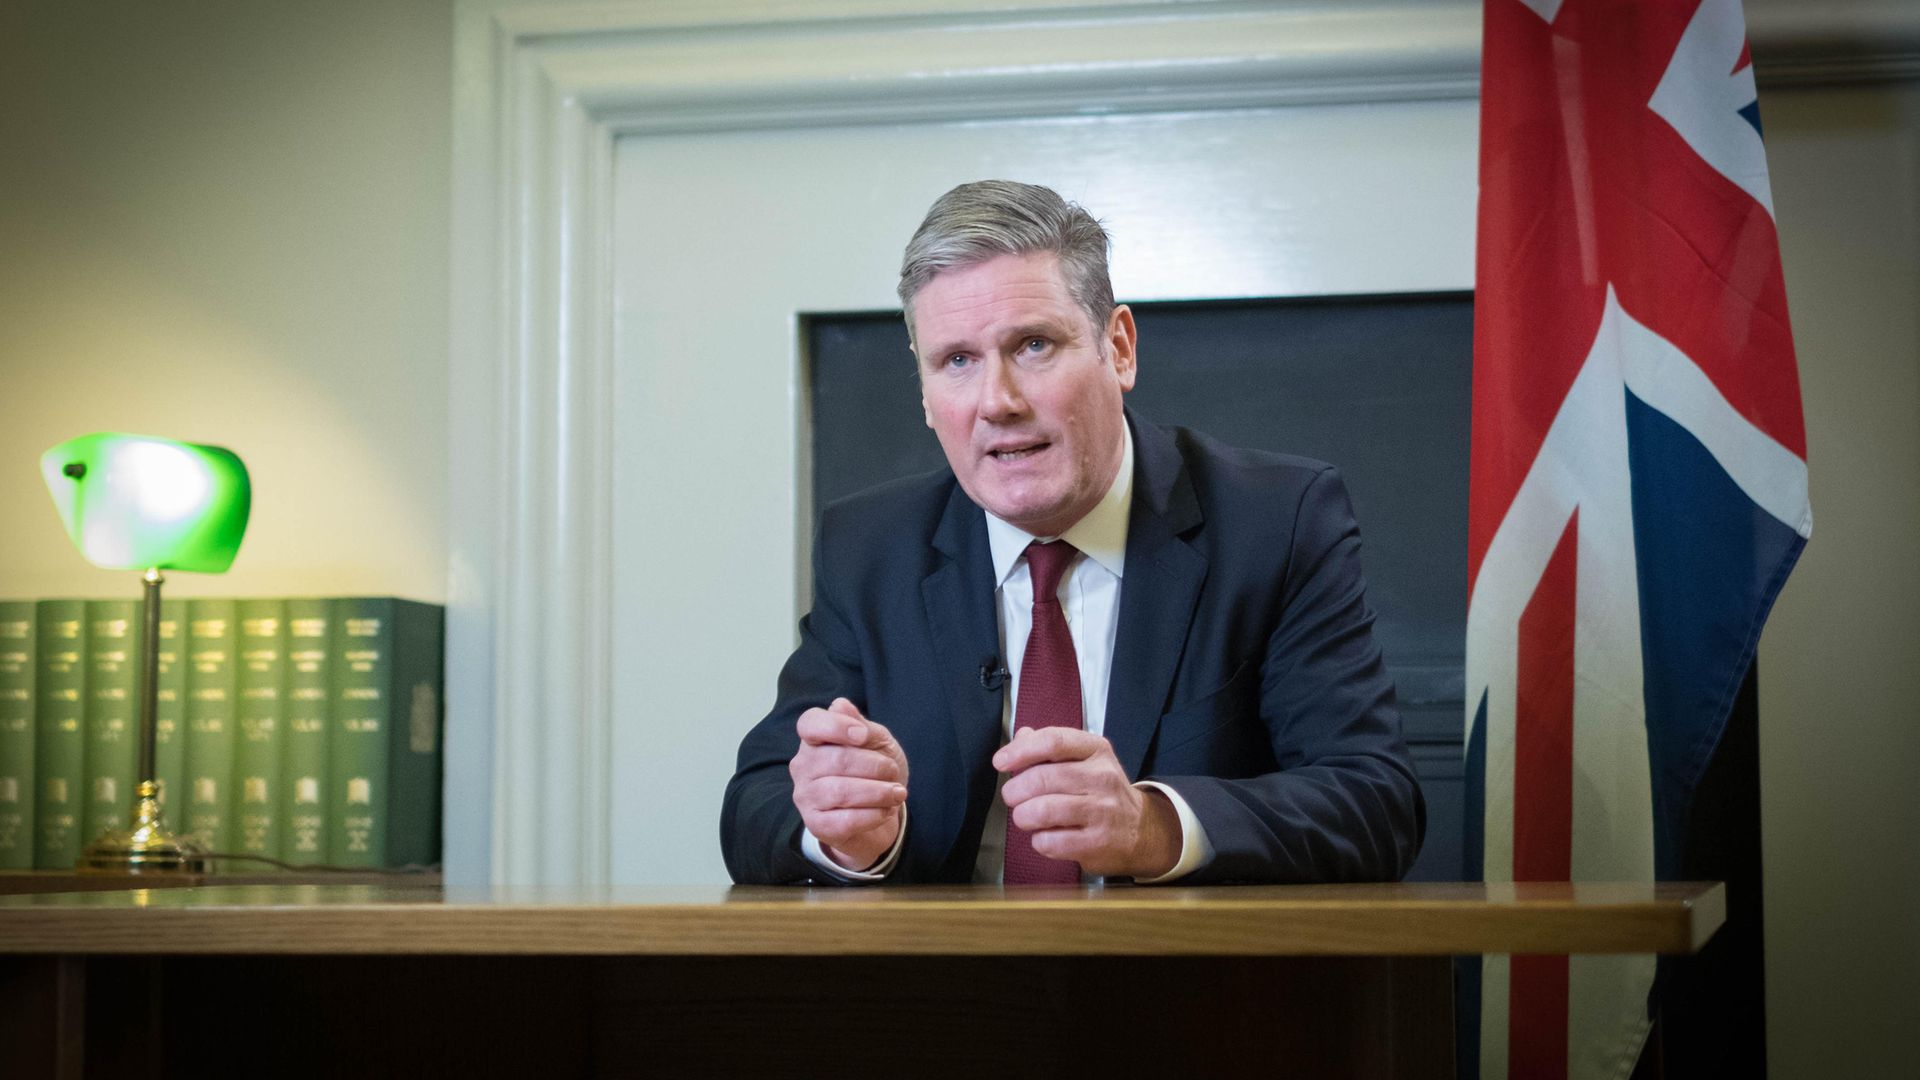 Labour leader Sir Keir Starmer delivers a statement from his office in the House of Commons in central London - Credit: PA